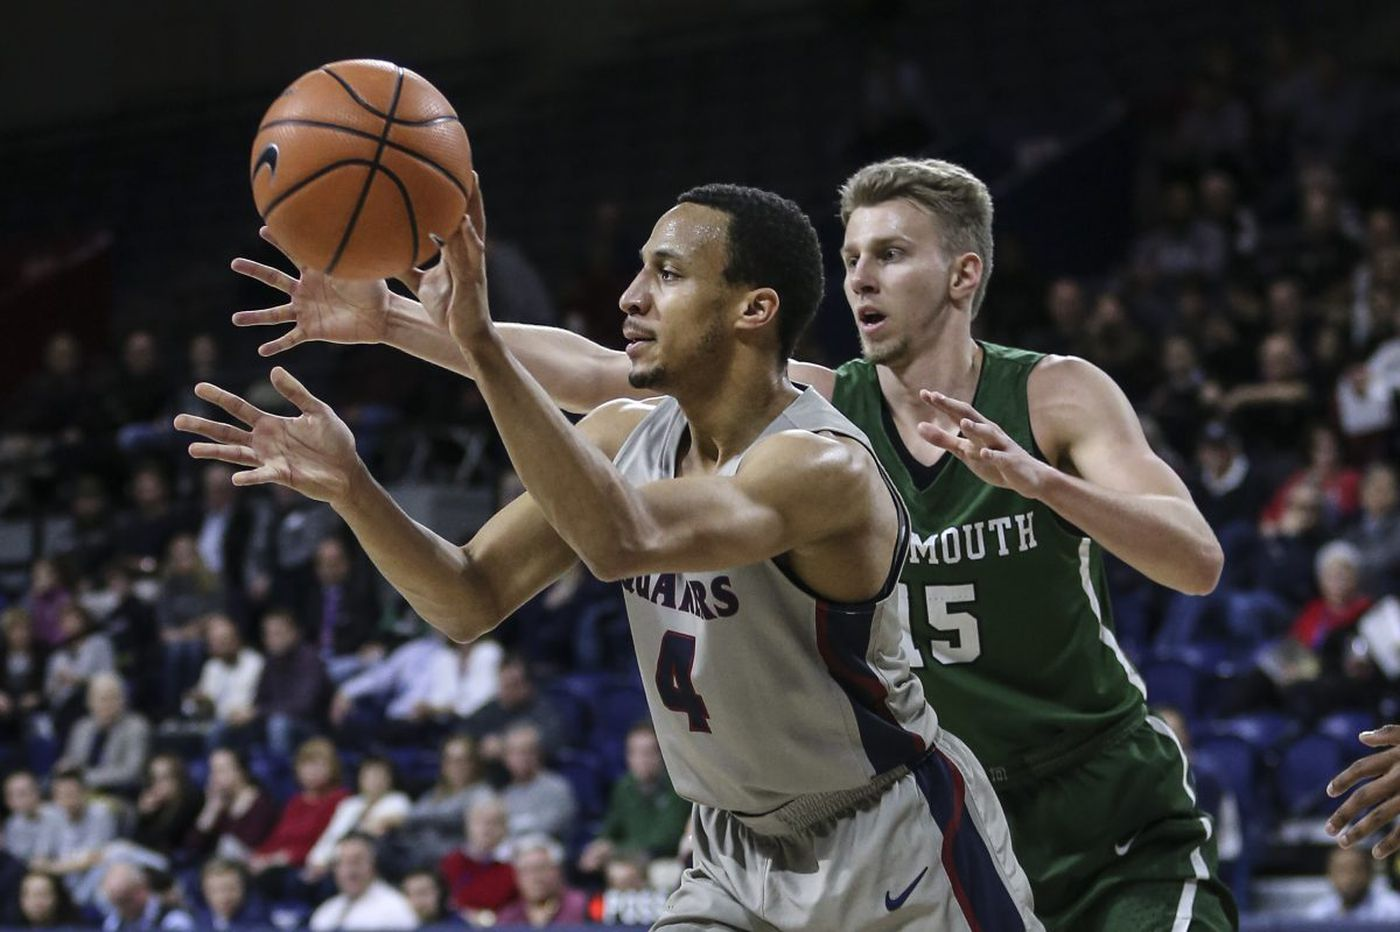 Penn's return to top of Ivy League basketball fueled by finding better shots | Mike Jensen